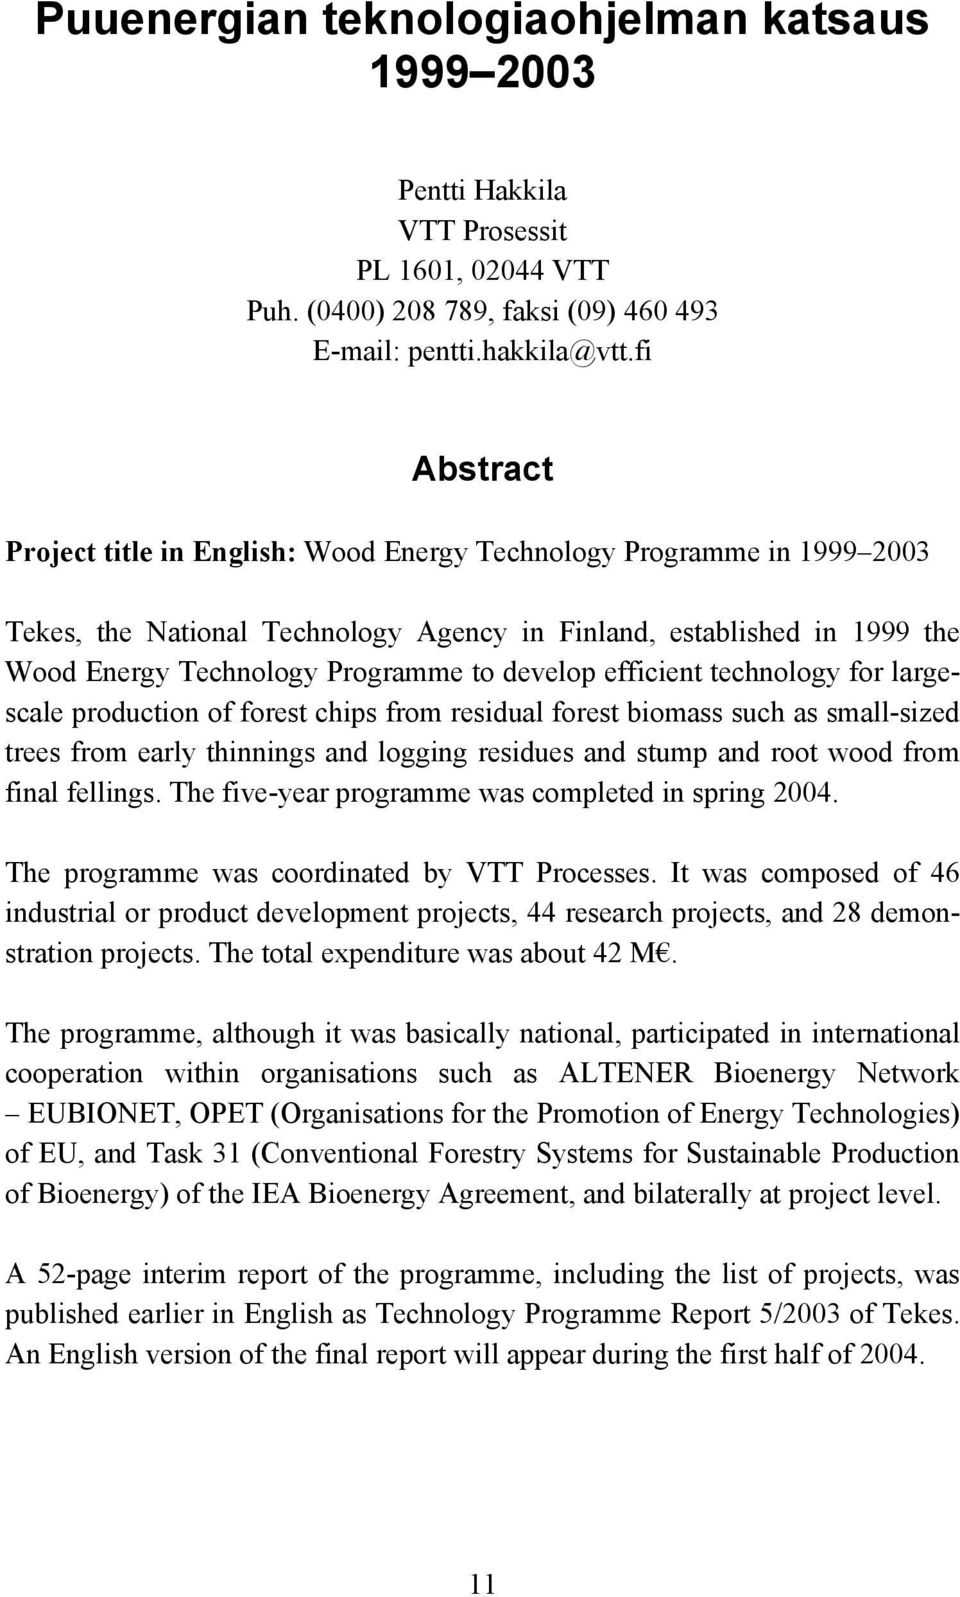 develop efficient technology for largescale production of forest chips from residual forest biomass such as small-sized trees from early thinnings and logging residues and stump and root wood from